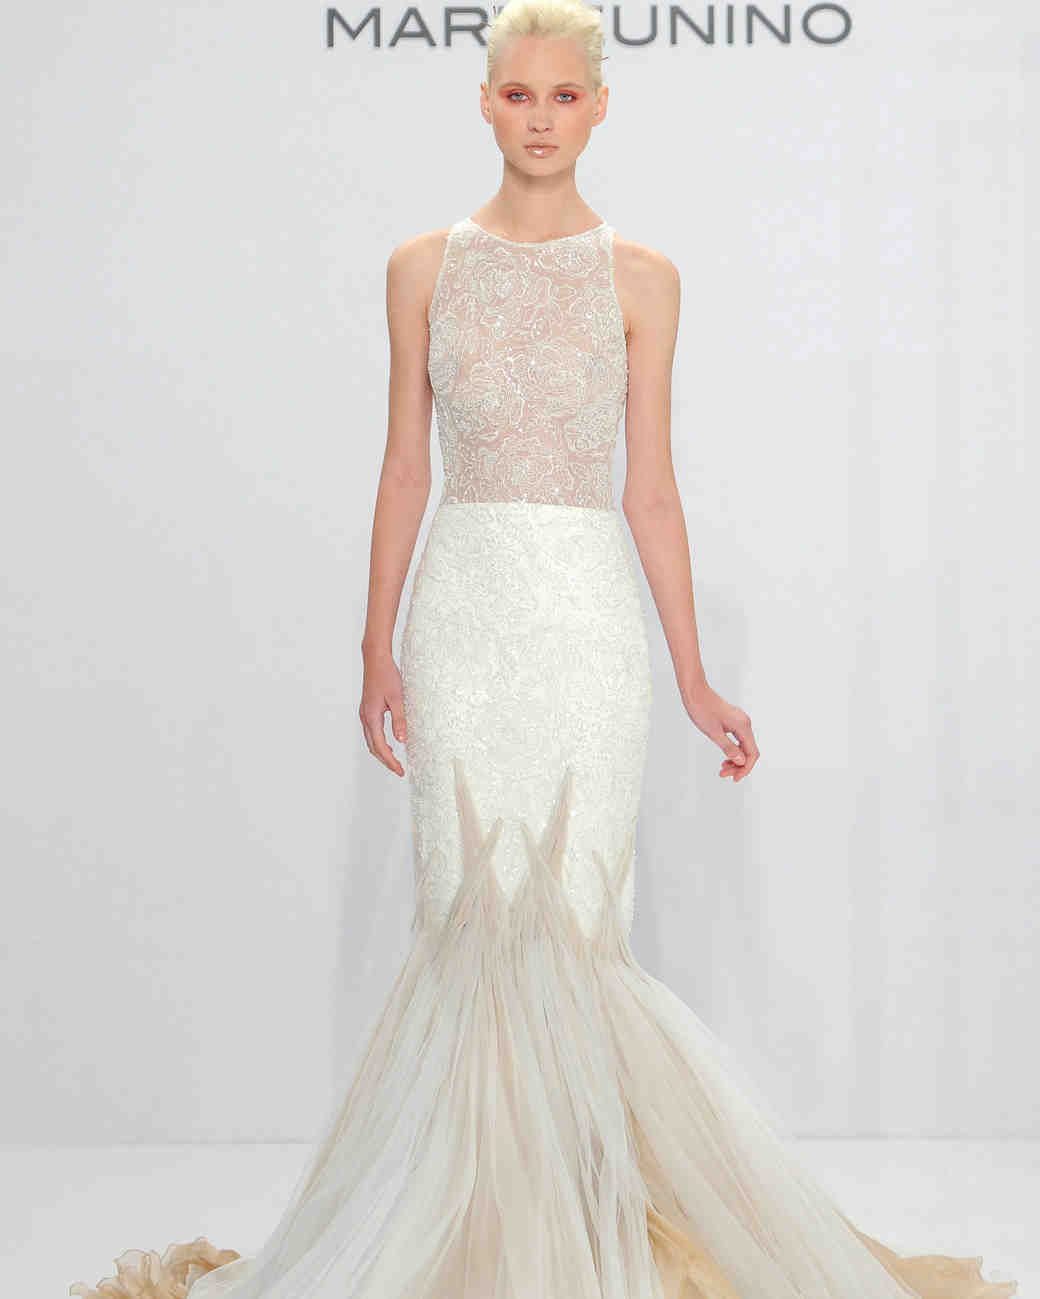 Mark zunino wedding dresses  Mark Zunino for Kleinfeld Fall  Wedding Dress Collection